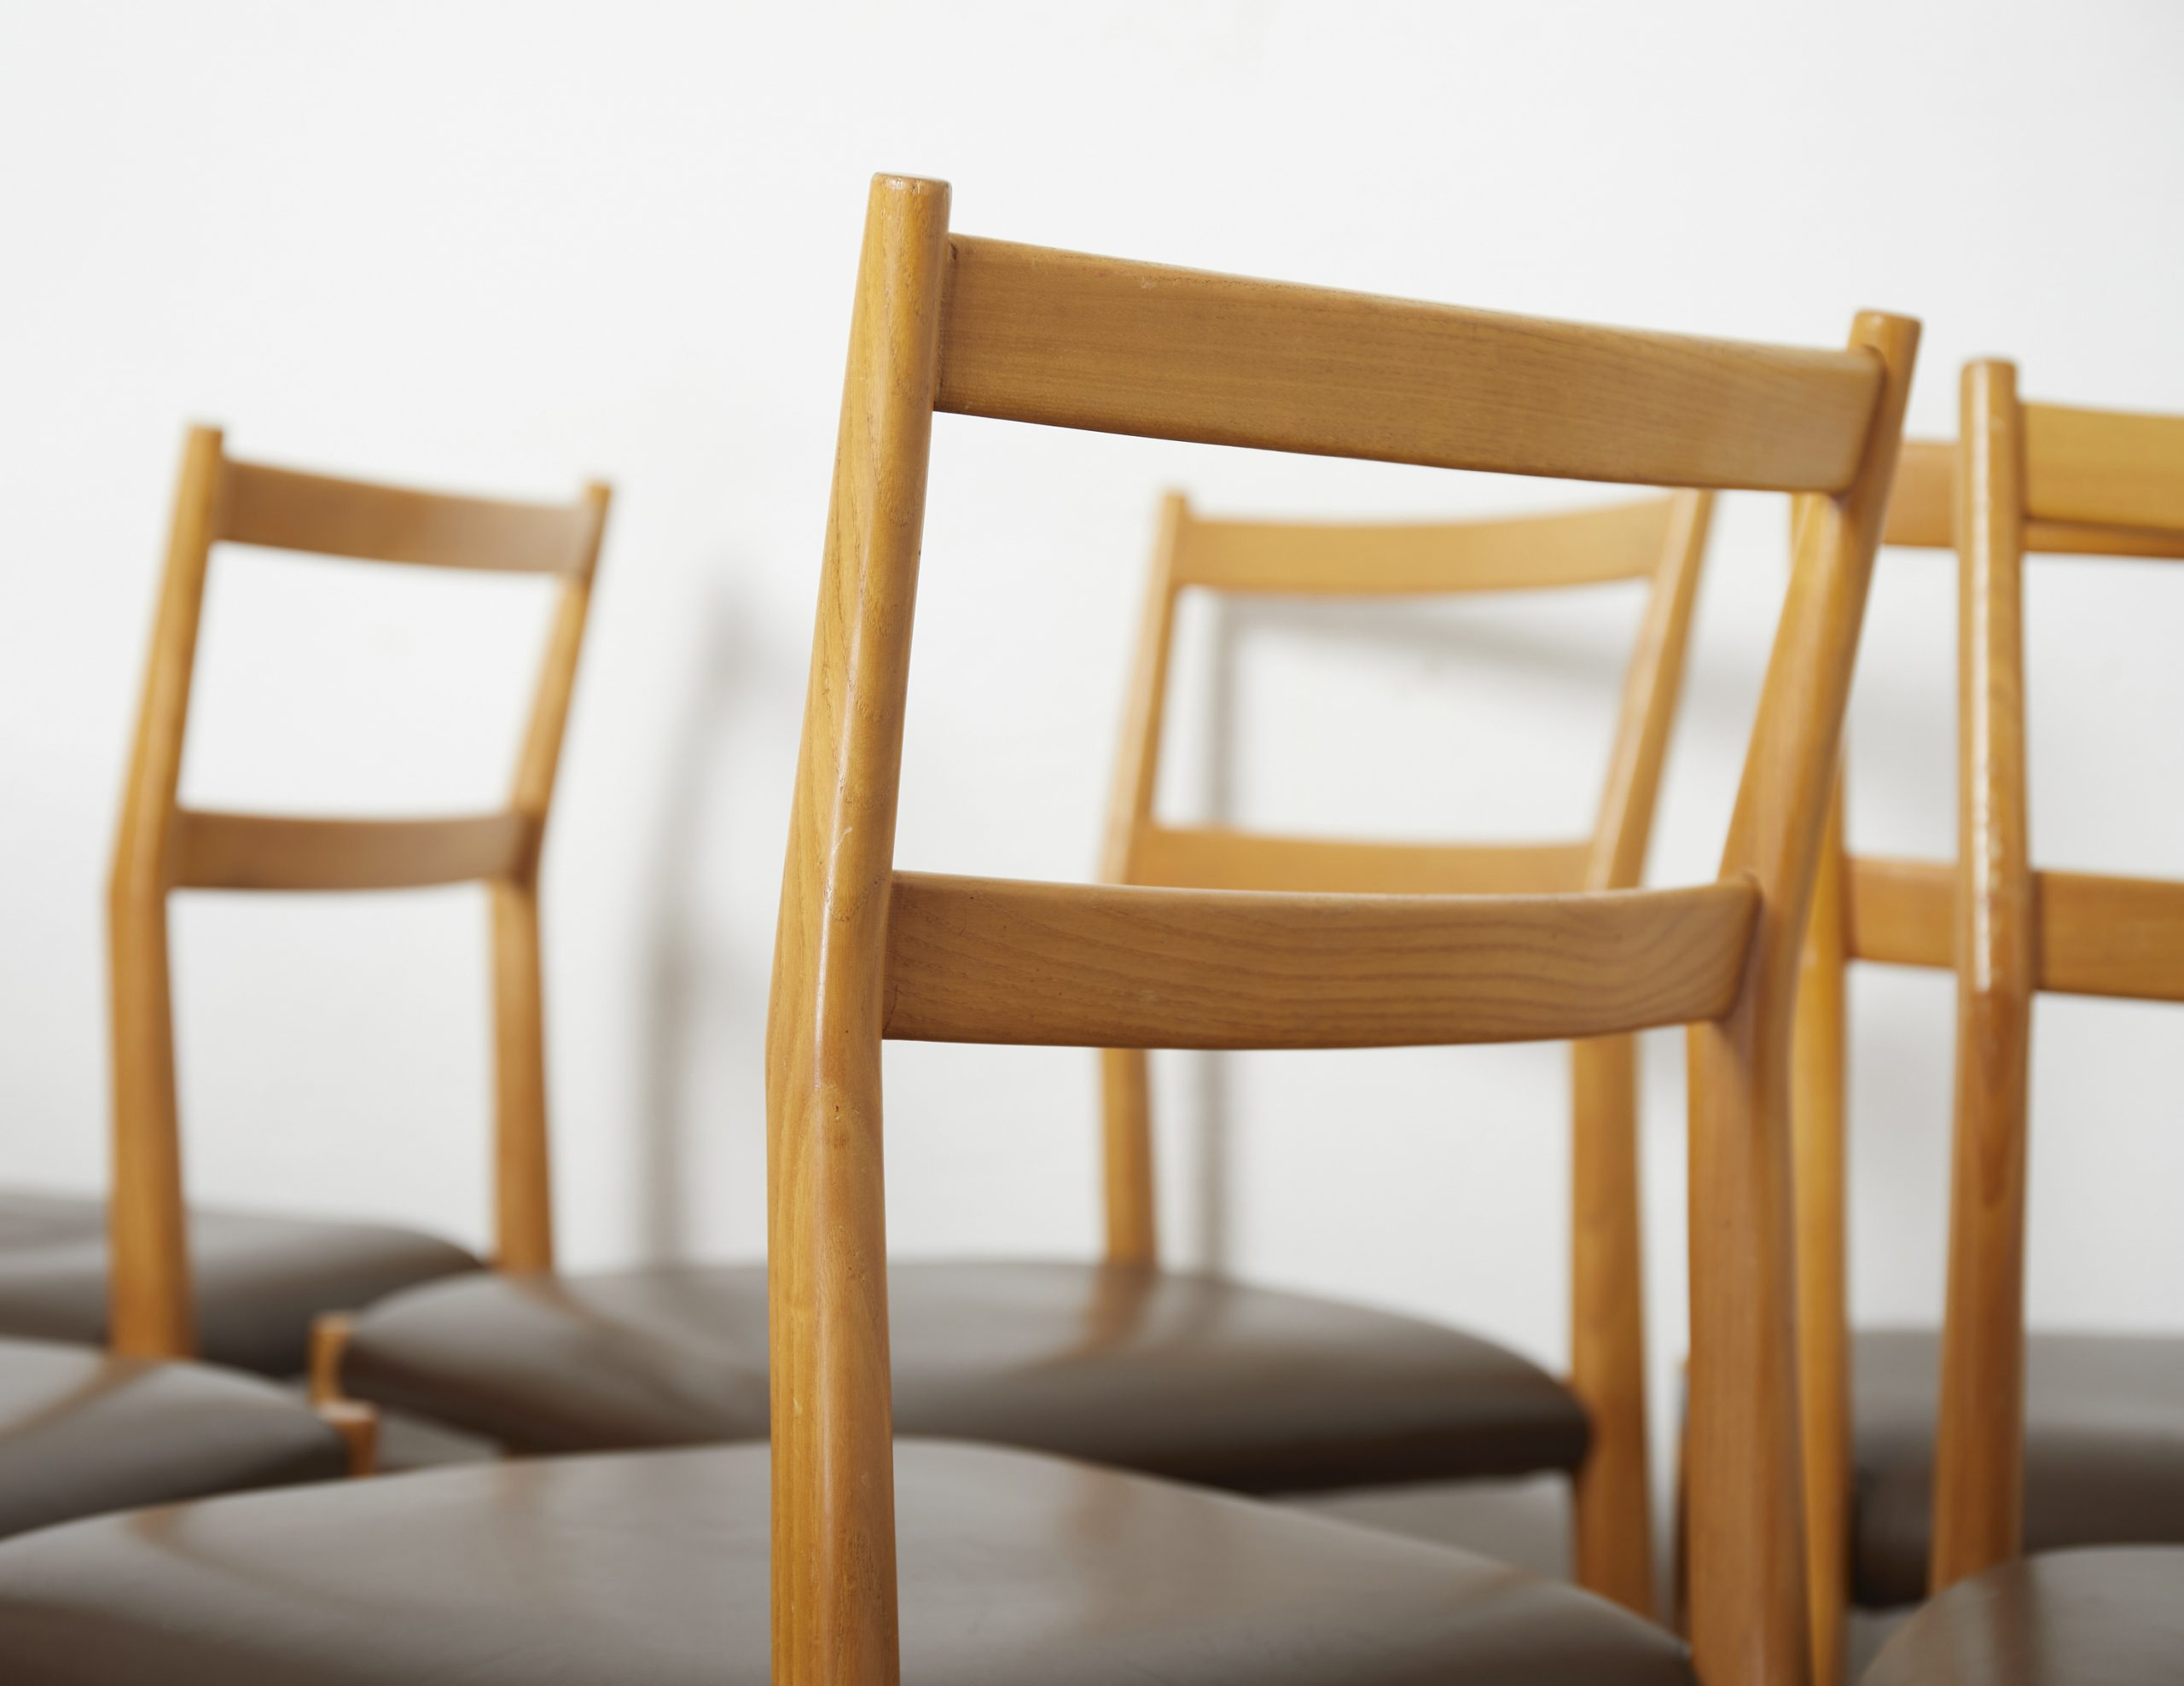 set-of-12-leggera-dining-chairs-by-gio-ponti-by-cassina-image-05